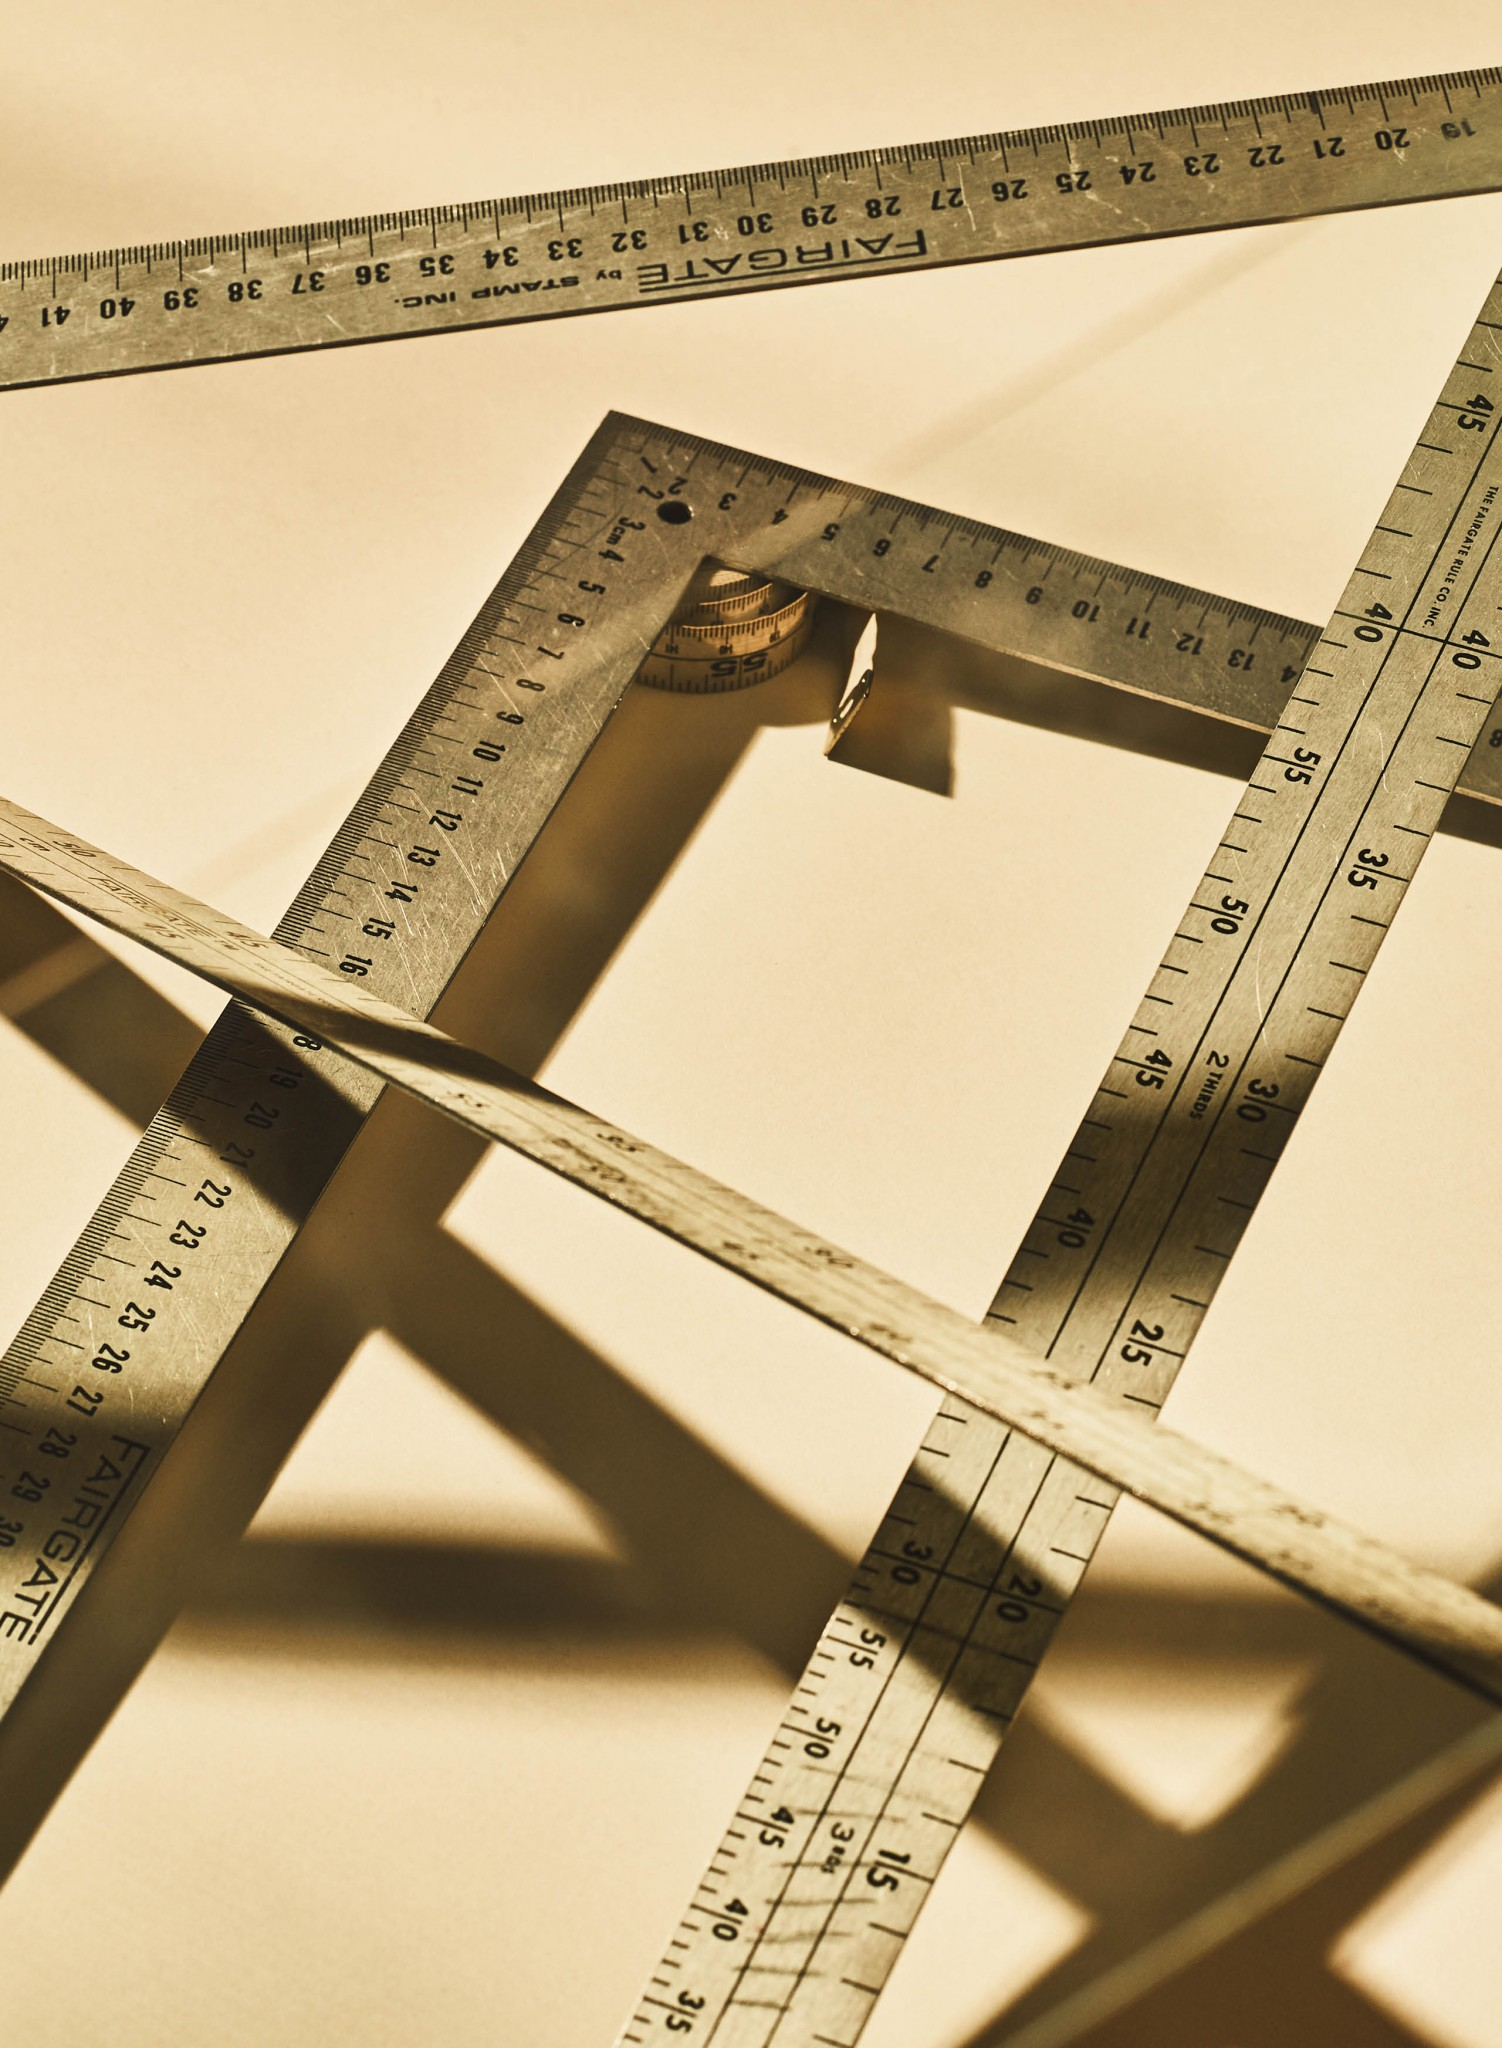 Closeup image of metal rulers and a tape measure